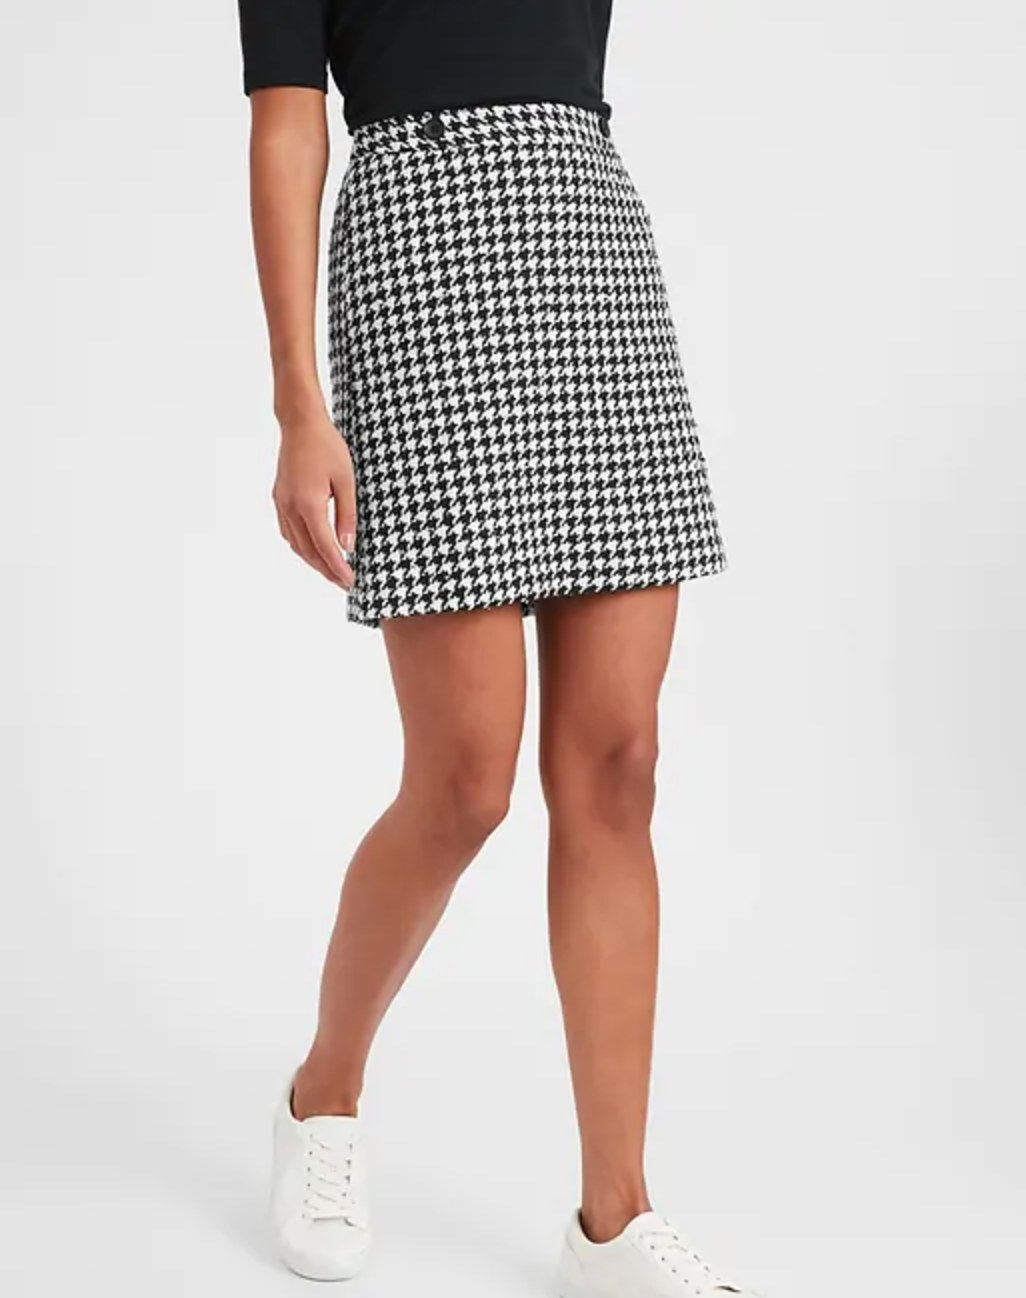 The houndstooth a-line mini skirt in black/white